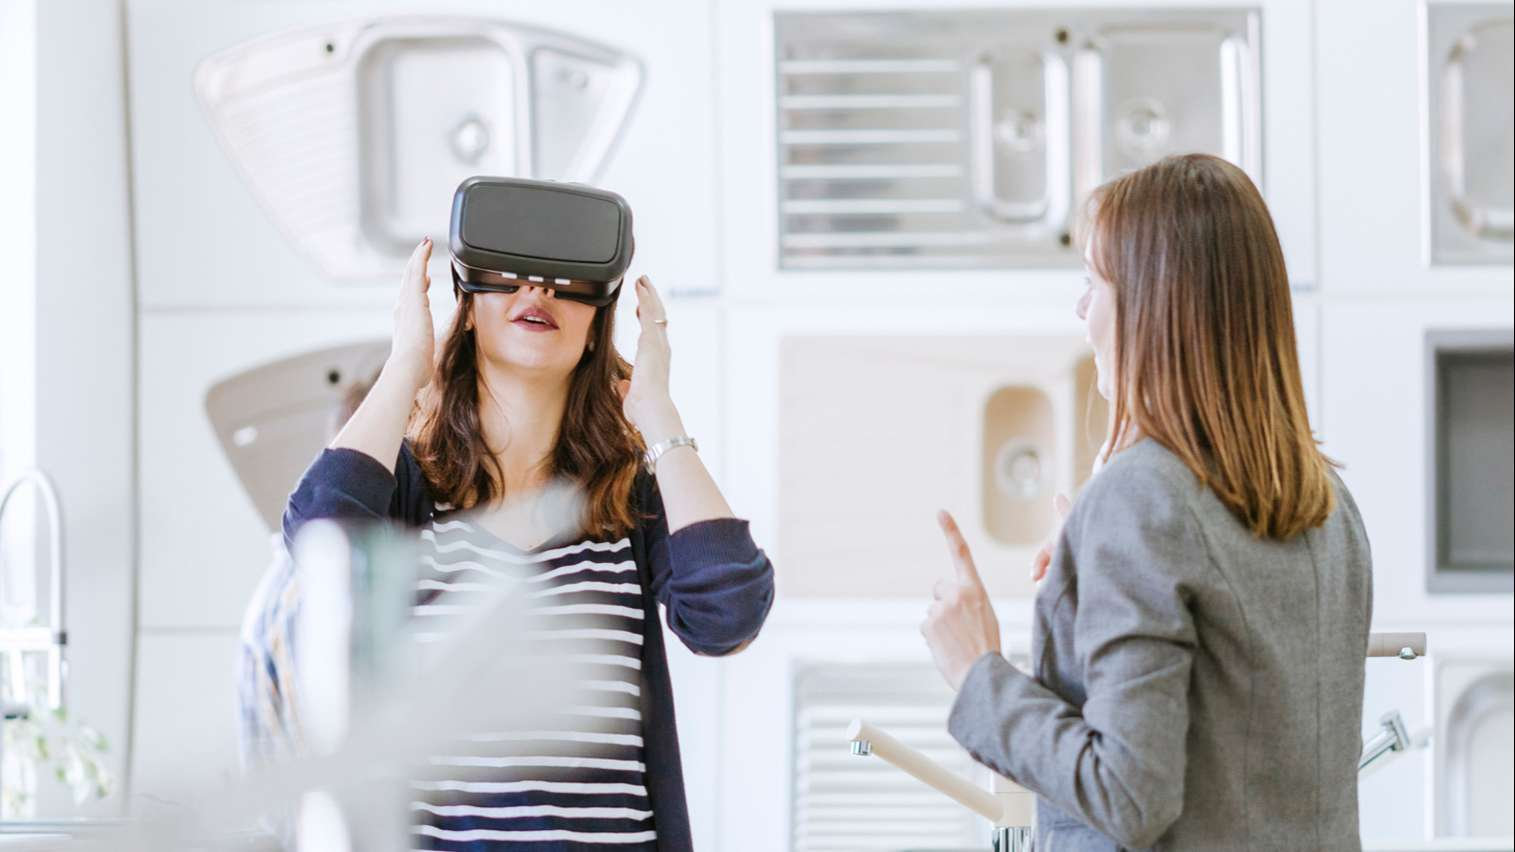 woman in a home retailer using VR technology